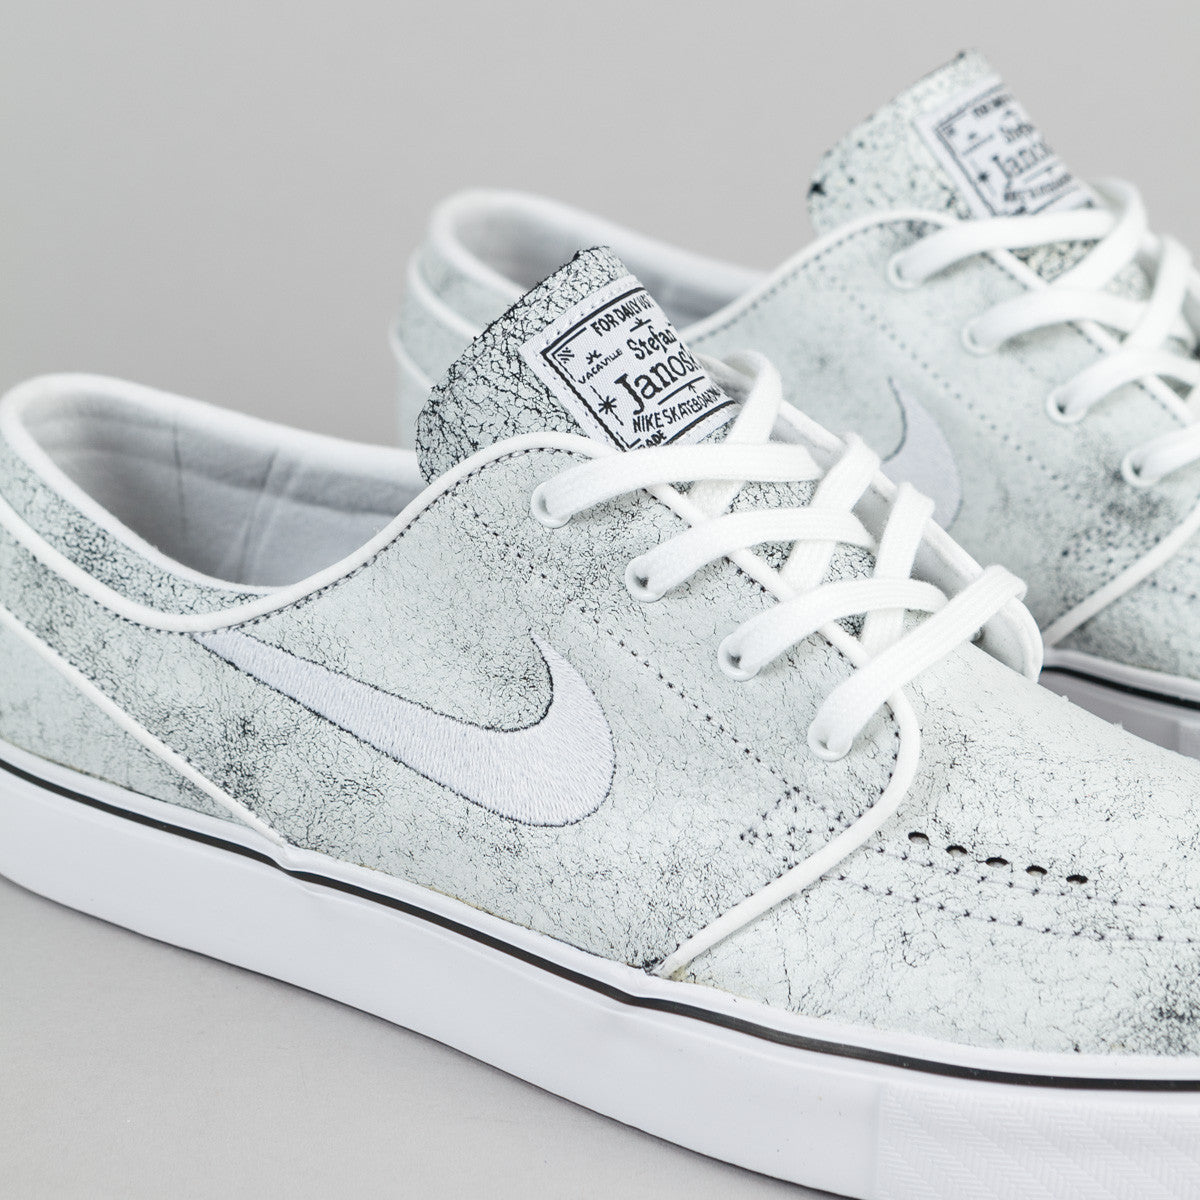 Nike SB Stefan Janoski Elite Shoes - White / White - Black